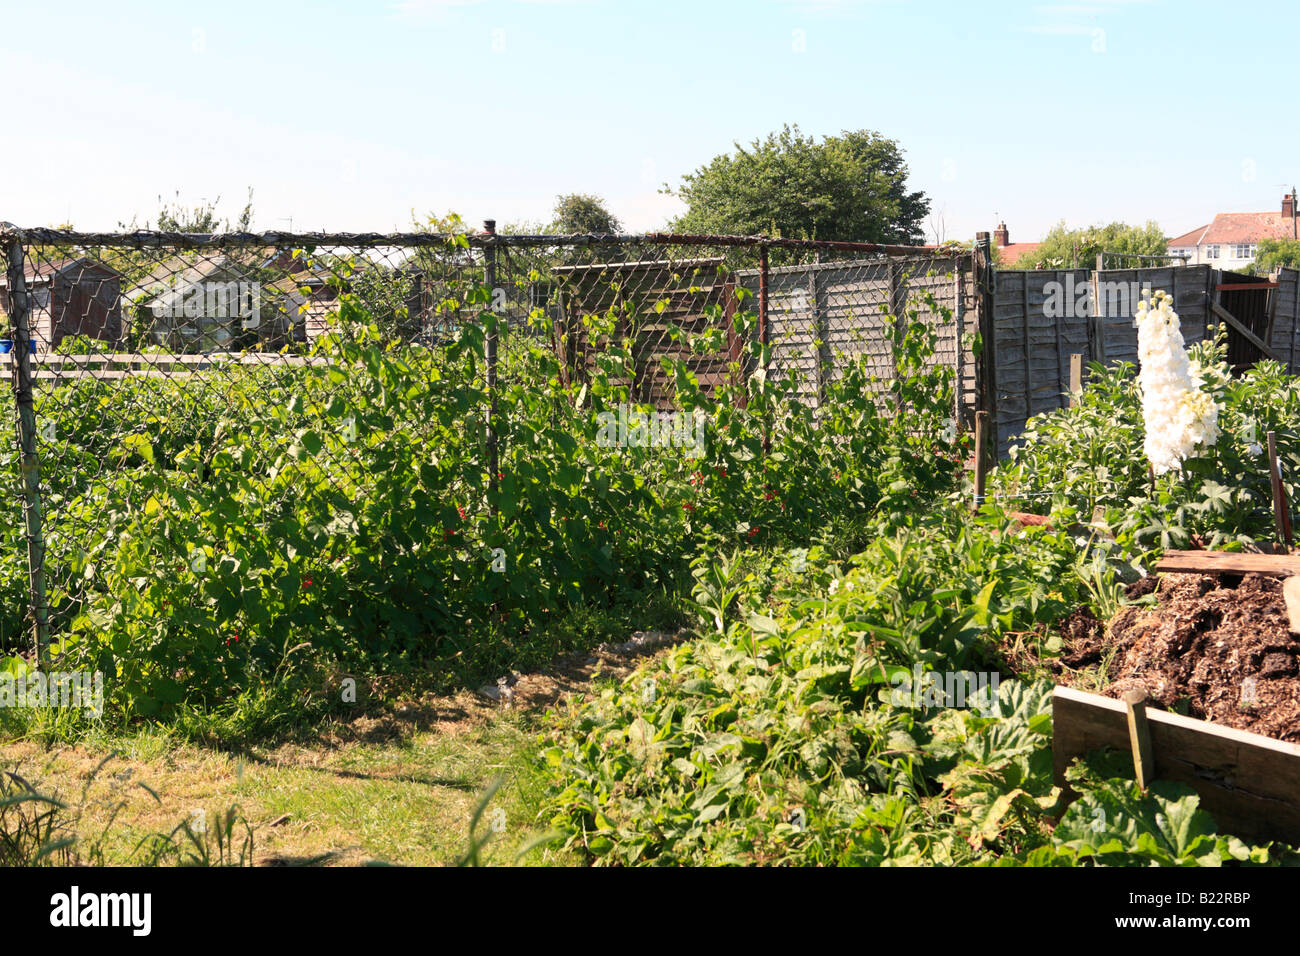 crops growing on allotment - Stock Image